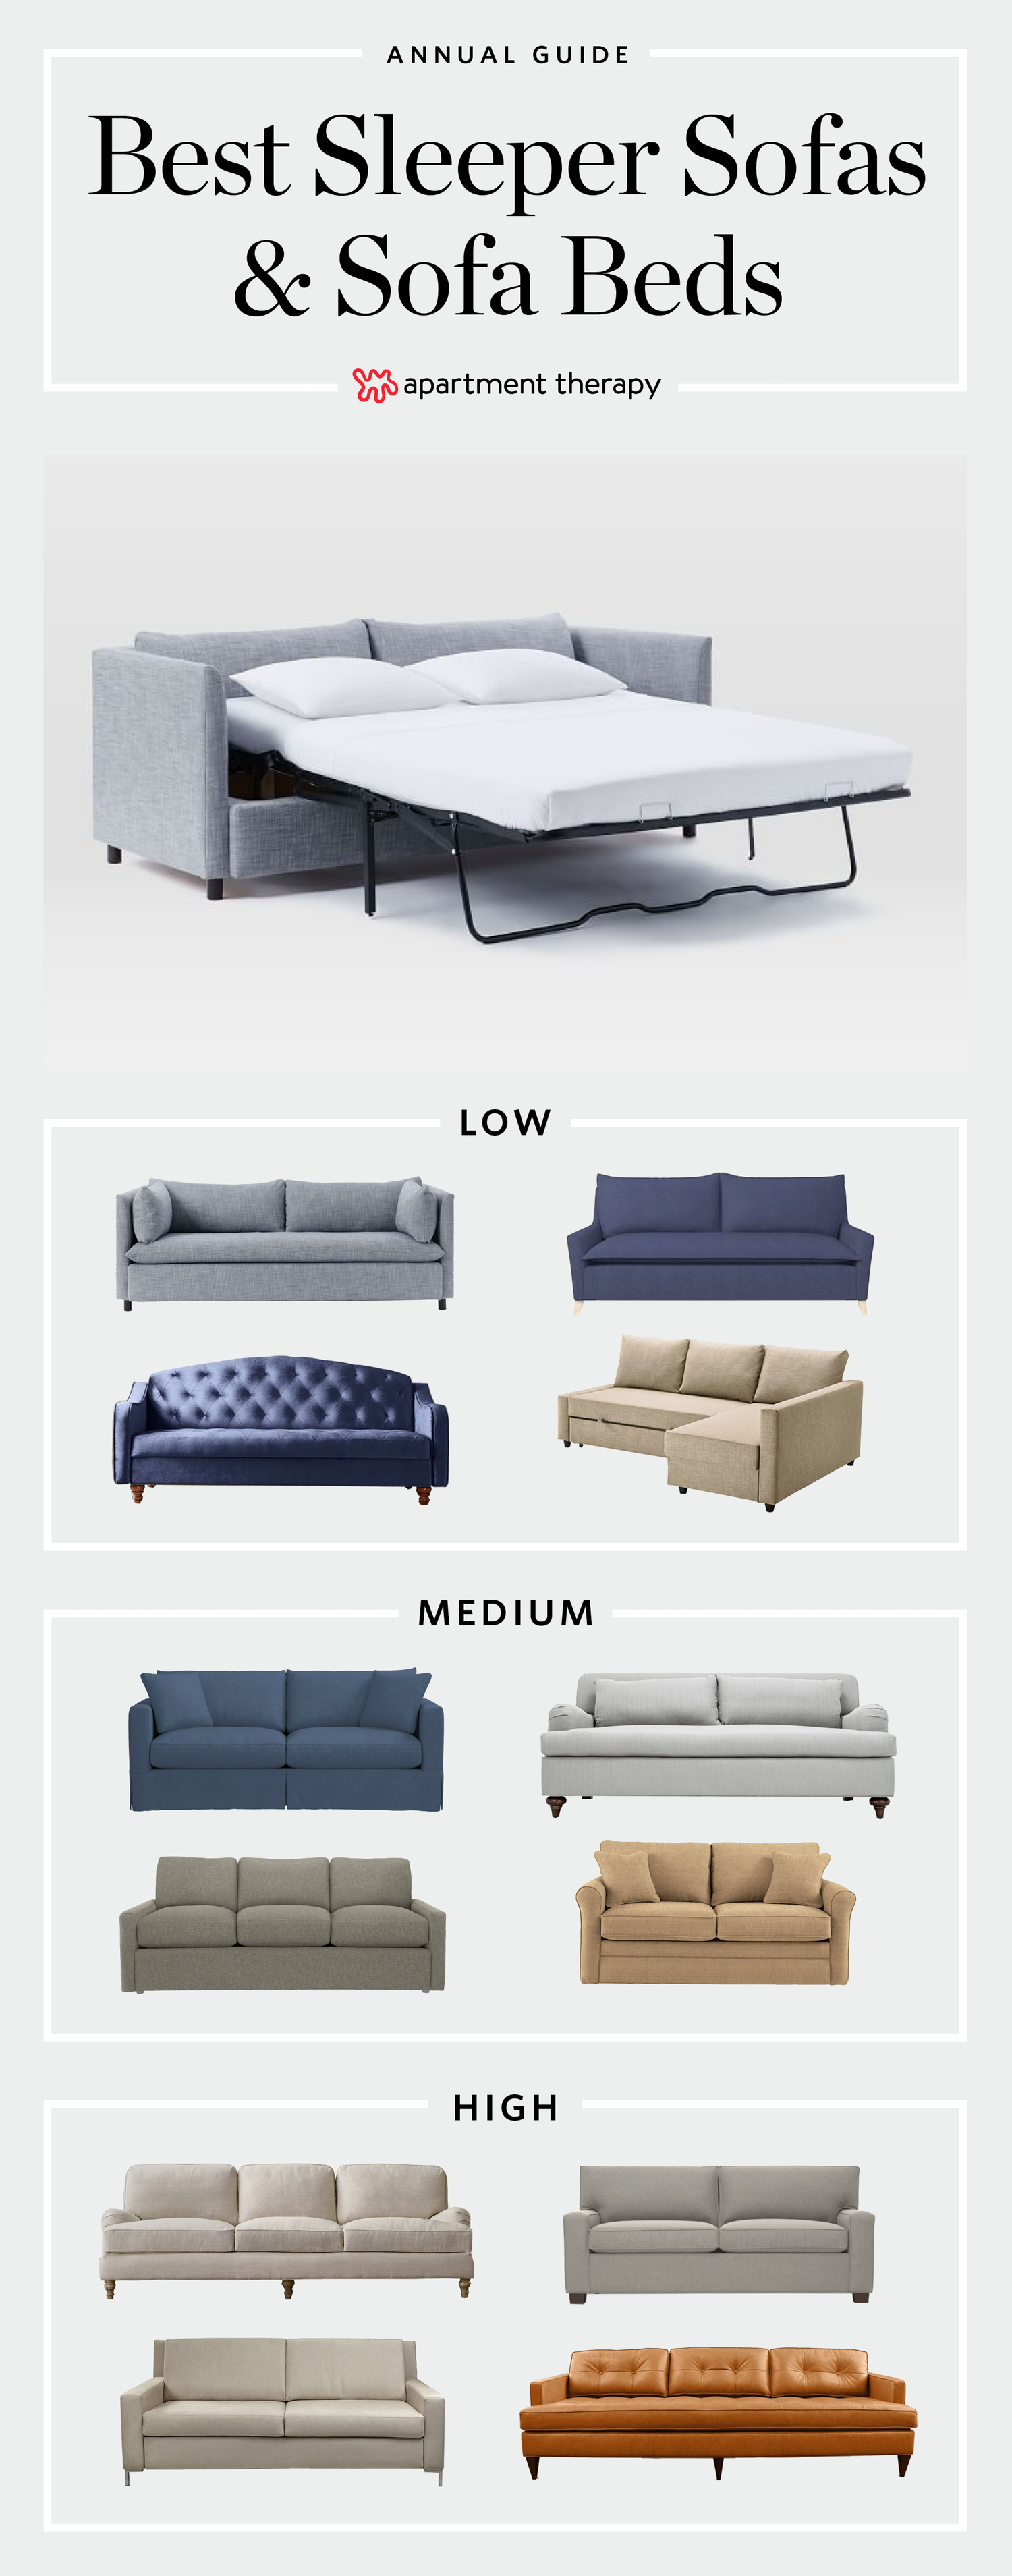 Day Night Sleeper Sofa Fabric Sets Images The Best Sofas And Beds In 2019 Study